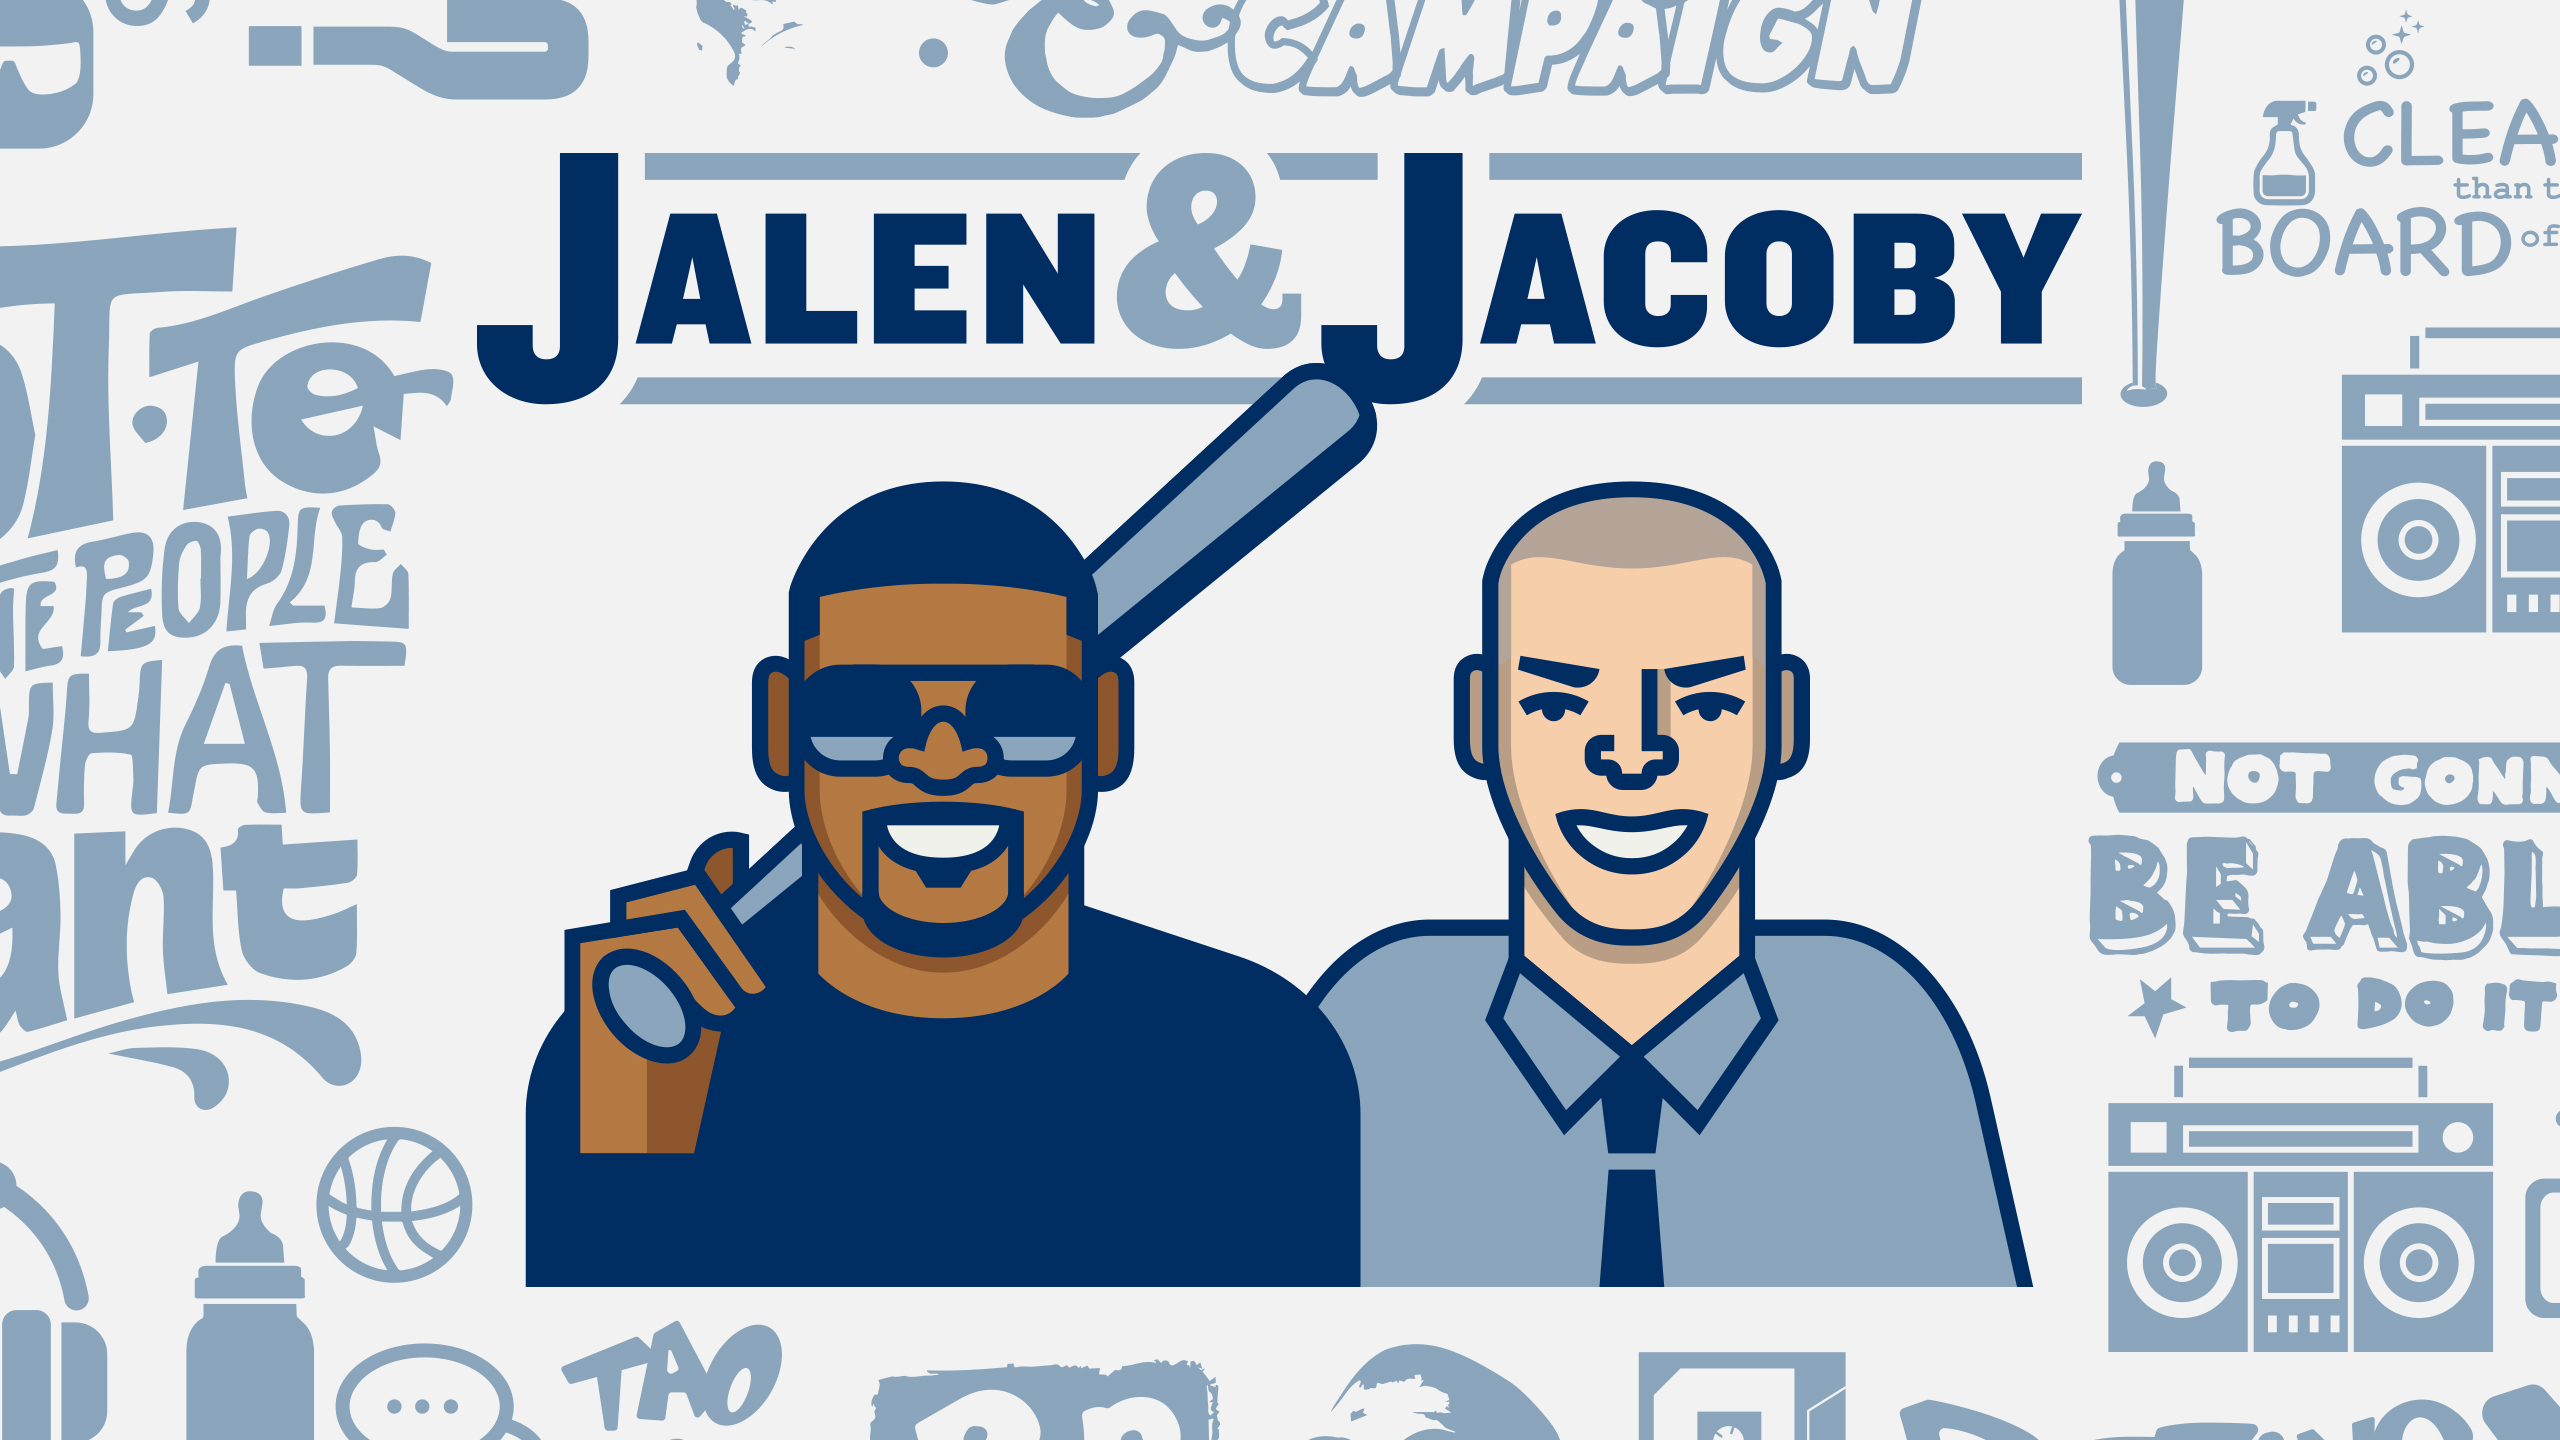 Fri, 2/22 - Jalen & Jacoby